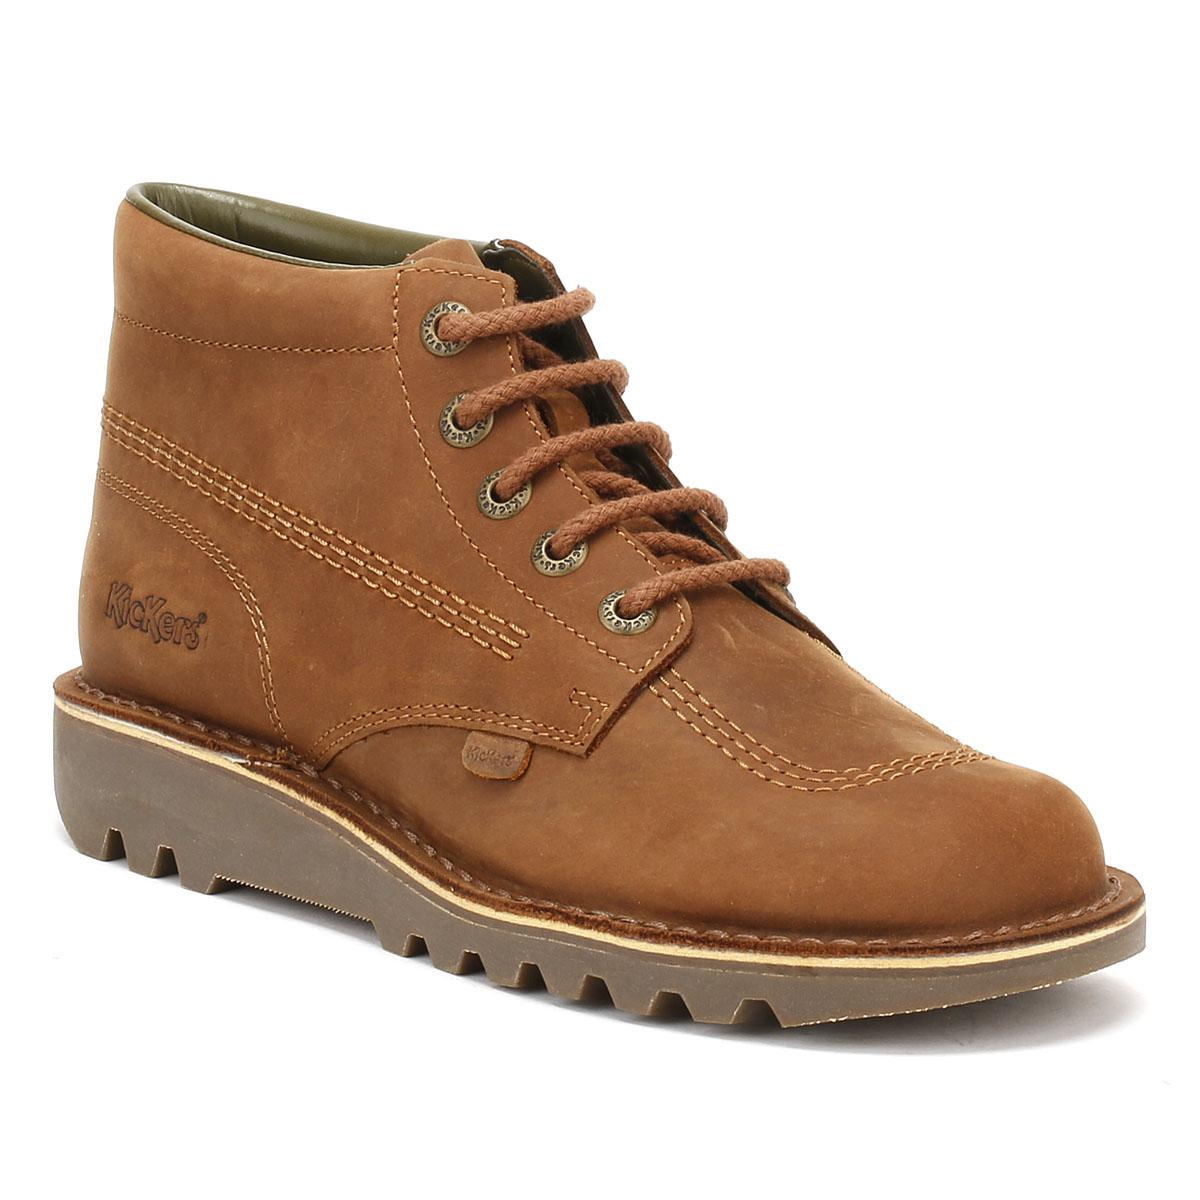 kickers kick hi leather boots in brown for men lyst